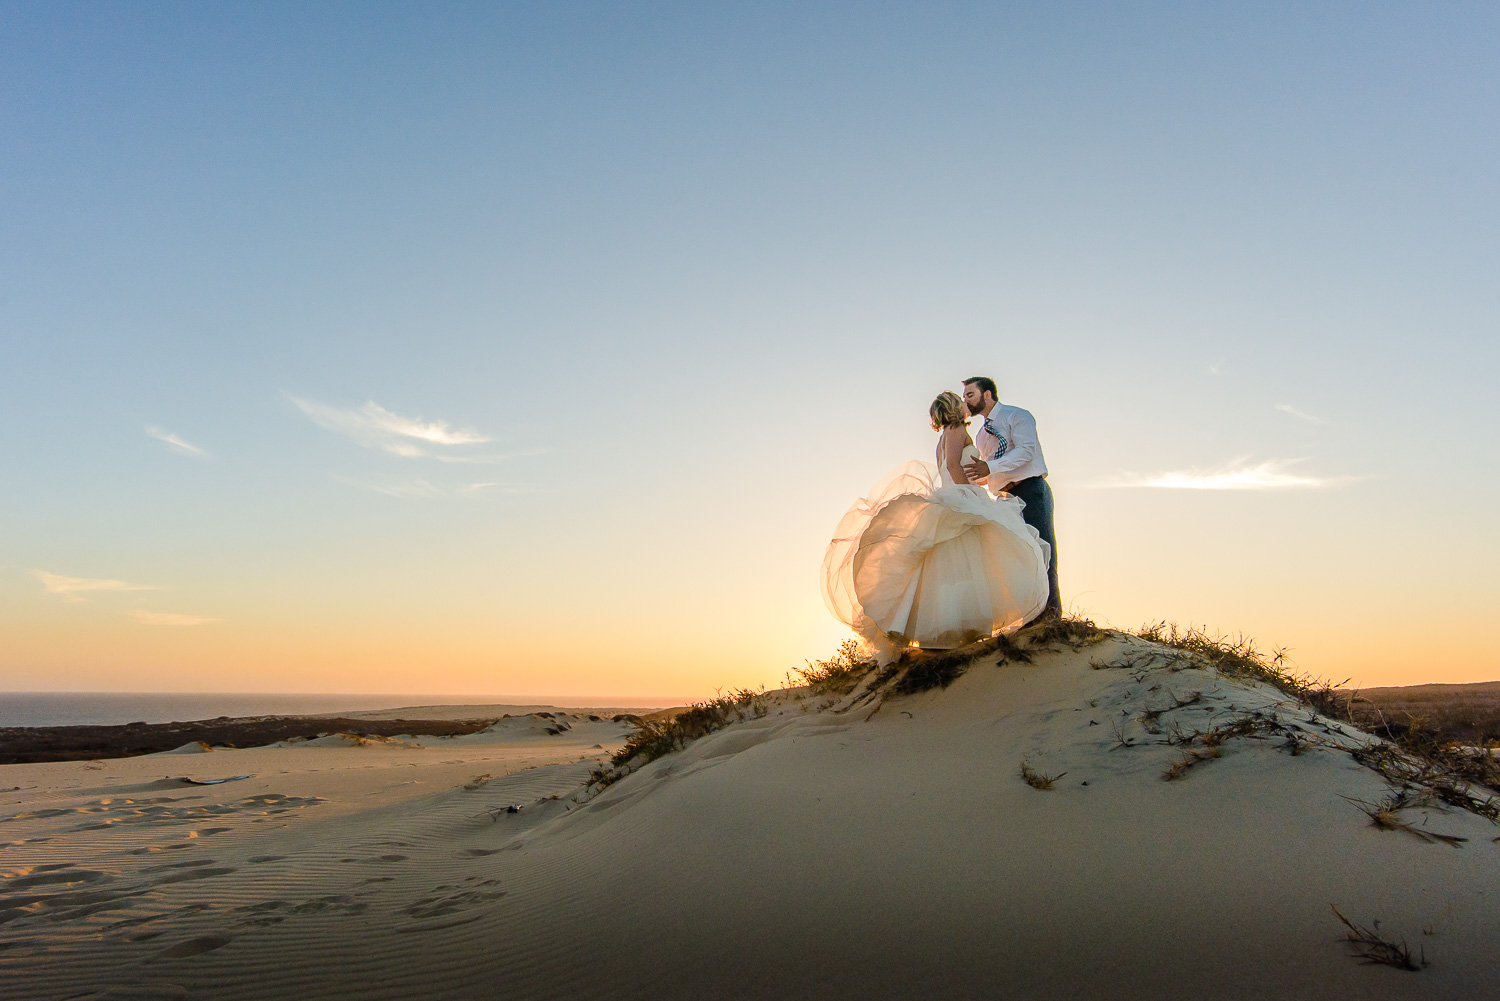 Bride and Groom kissing on top of a small dune during an amazing sunset in Cabo San Lucas